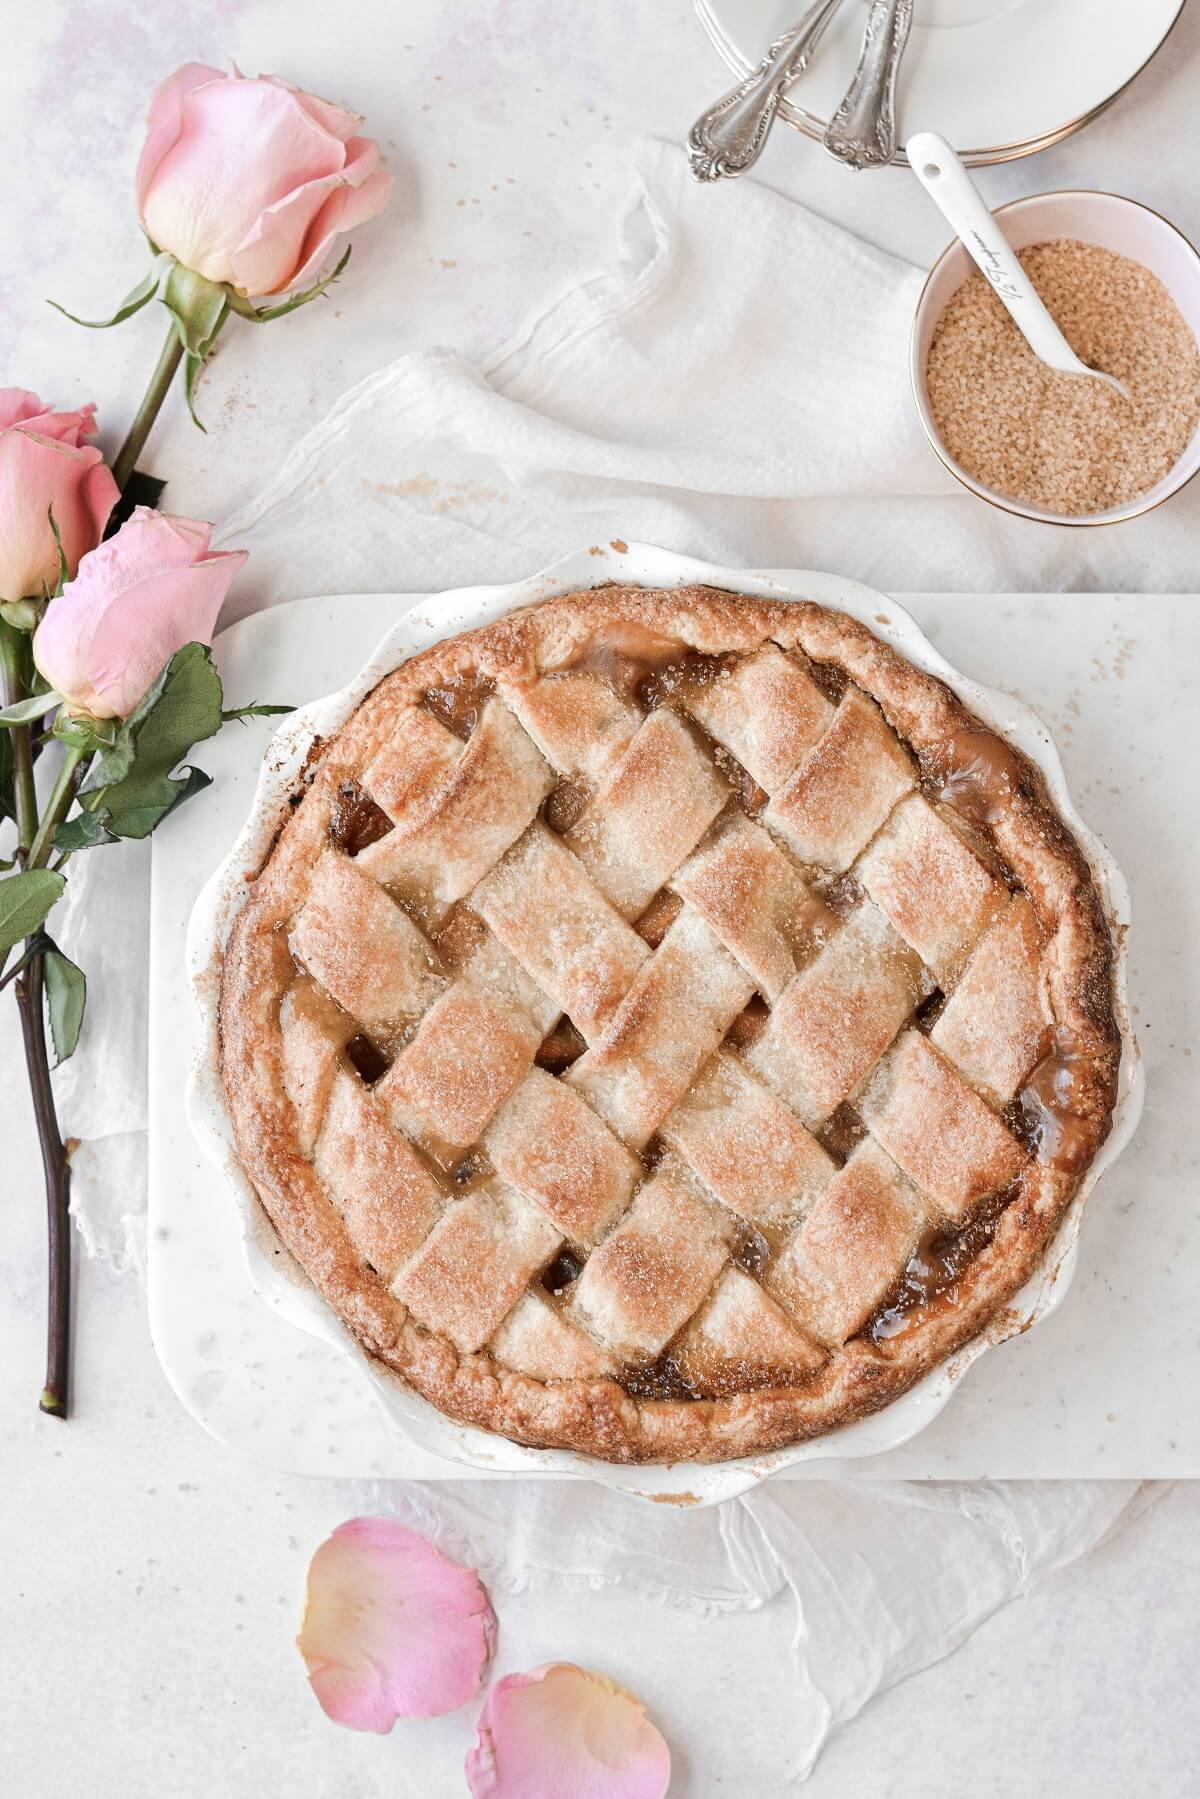 Peach pie with a lattice crust, next to pink roses.